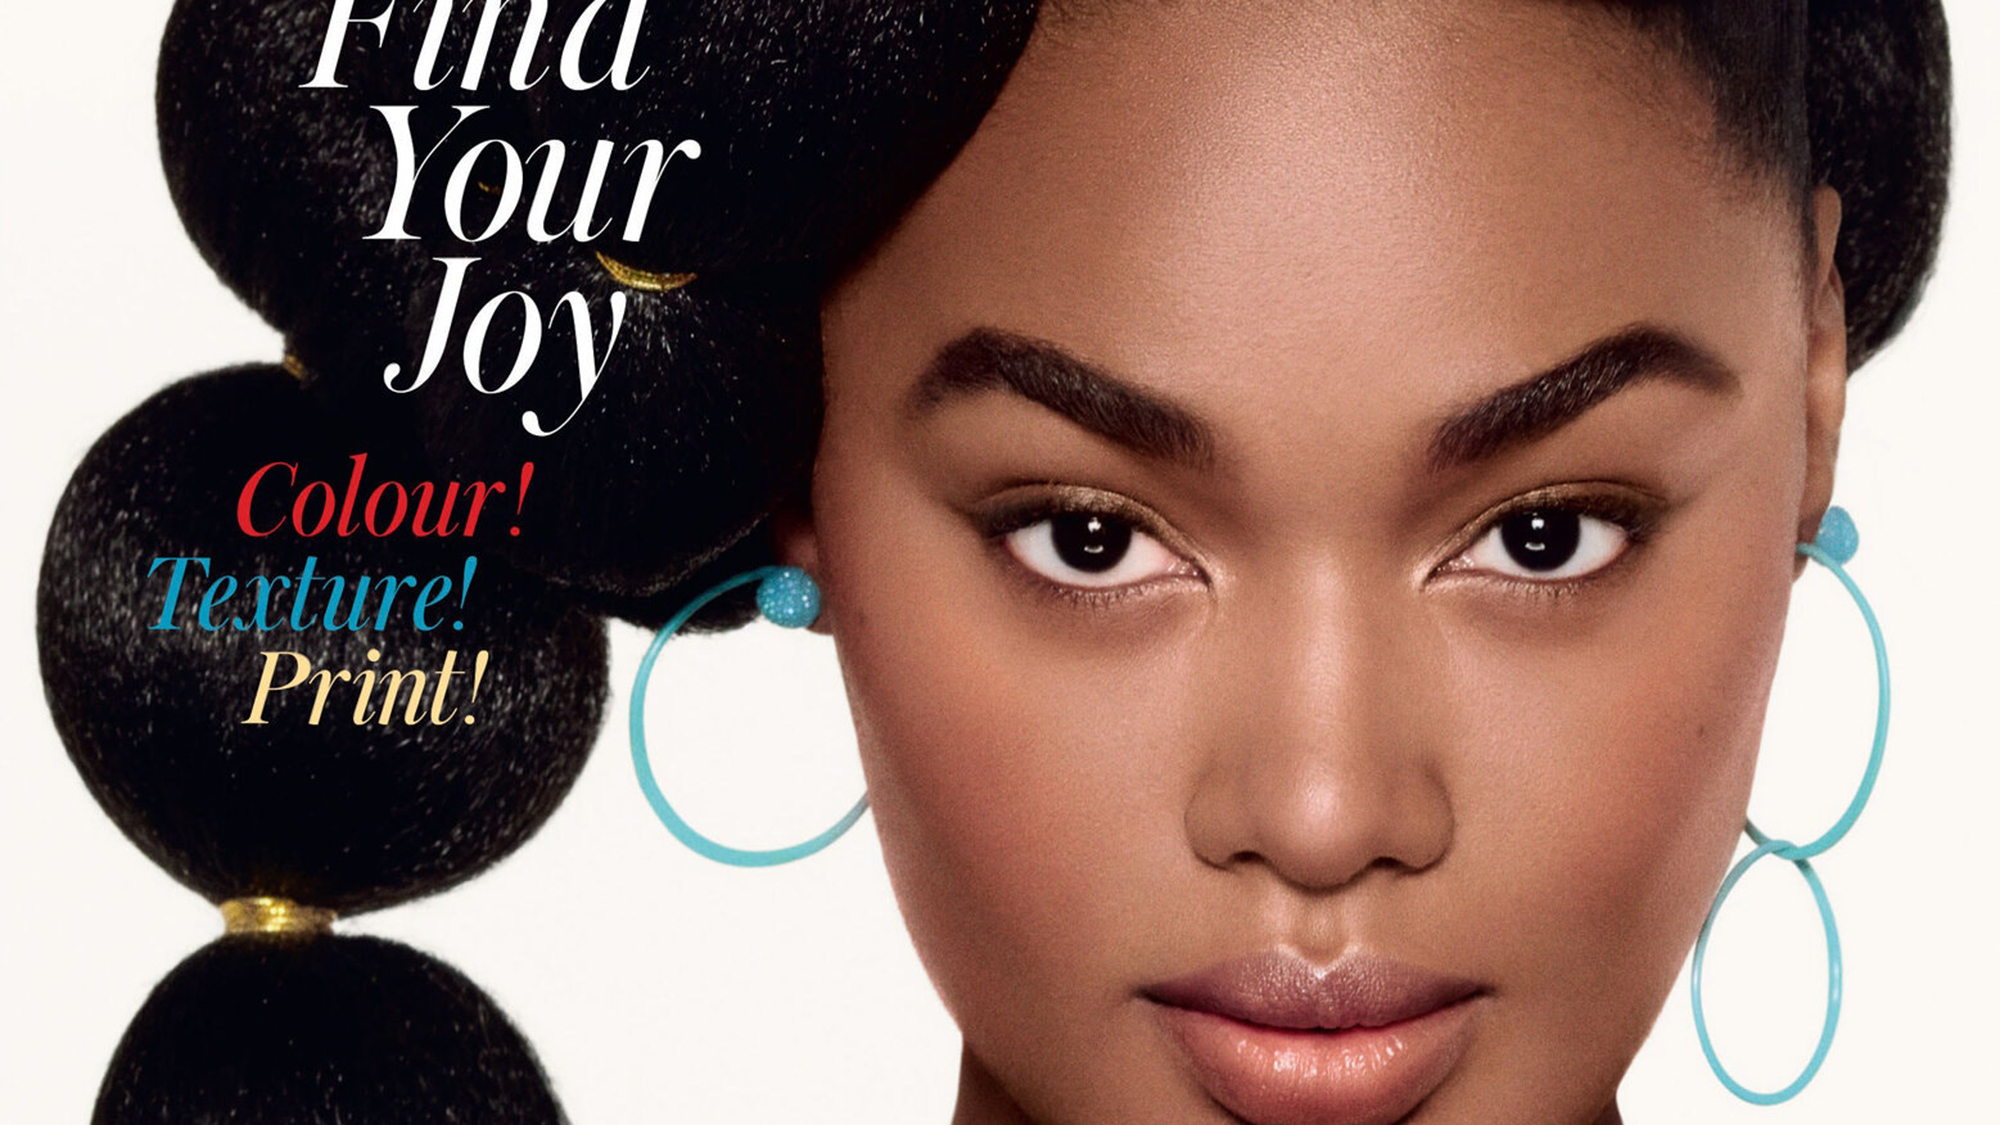 At Top Magazines, Black Representation Remains a Work in Progress